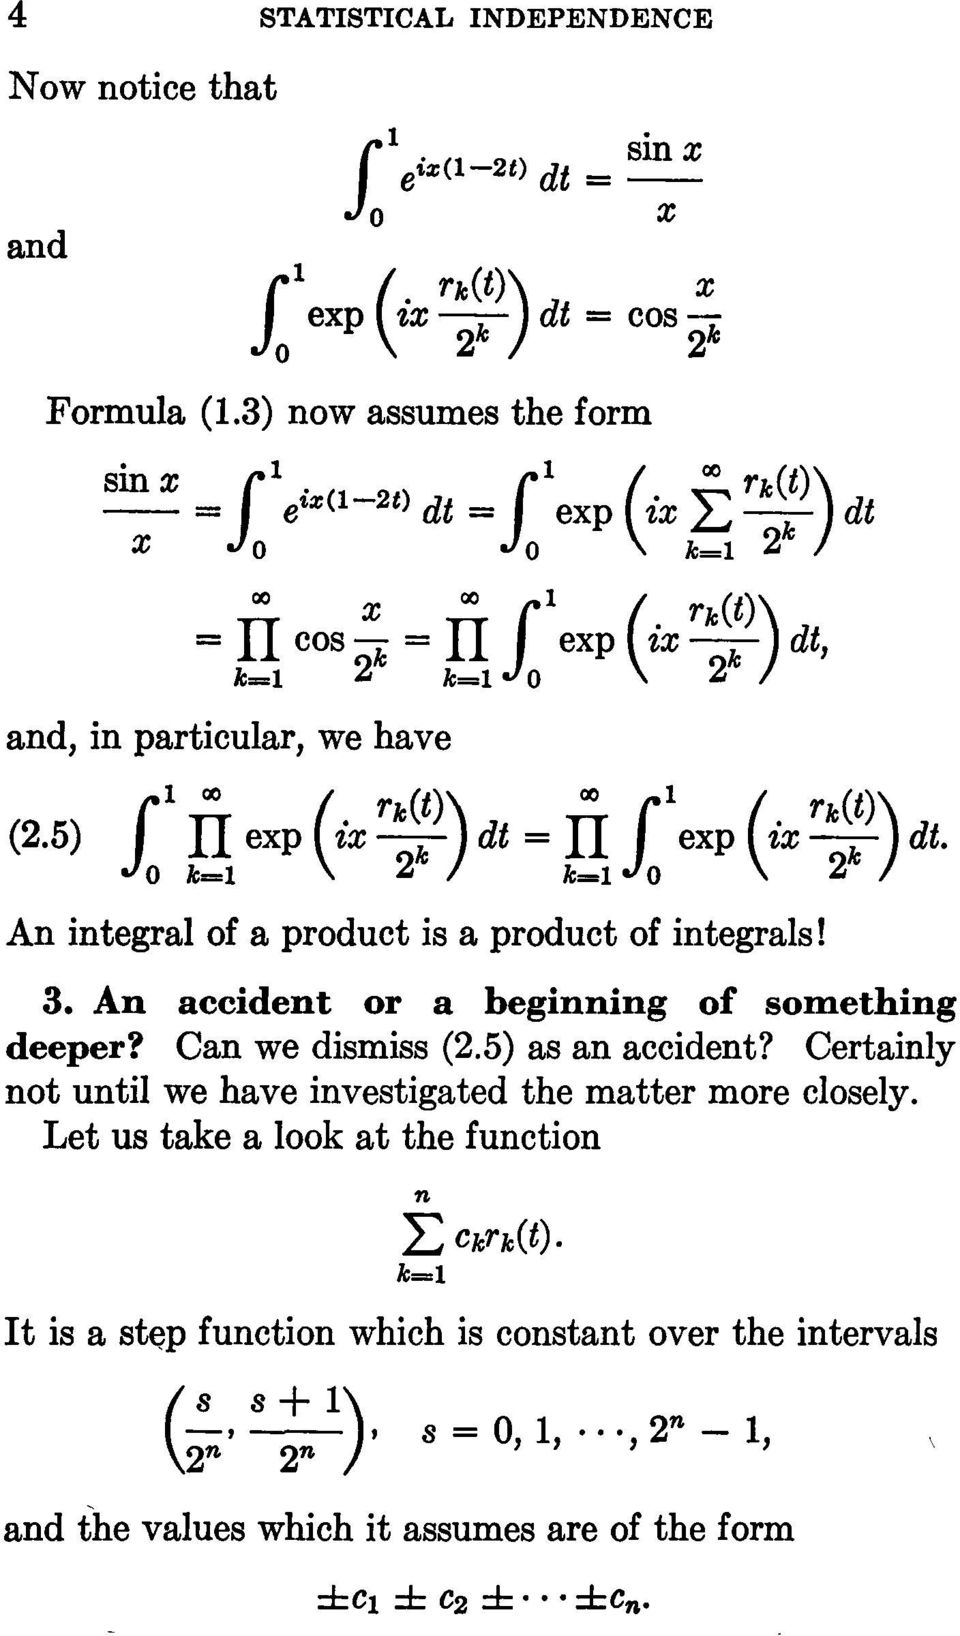 5) i1 IT exp (ix rk~)) dt = ITi1exp (ix rk~)) dt. o k=1 2 k=1 0 2 An integral of a product is a product of integrals! 3. An accident or a beginning of something deeper?